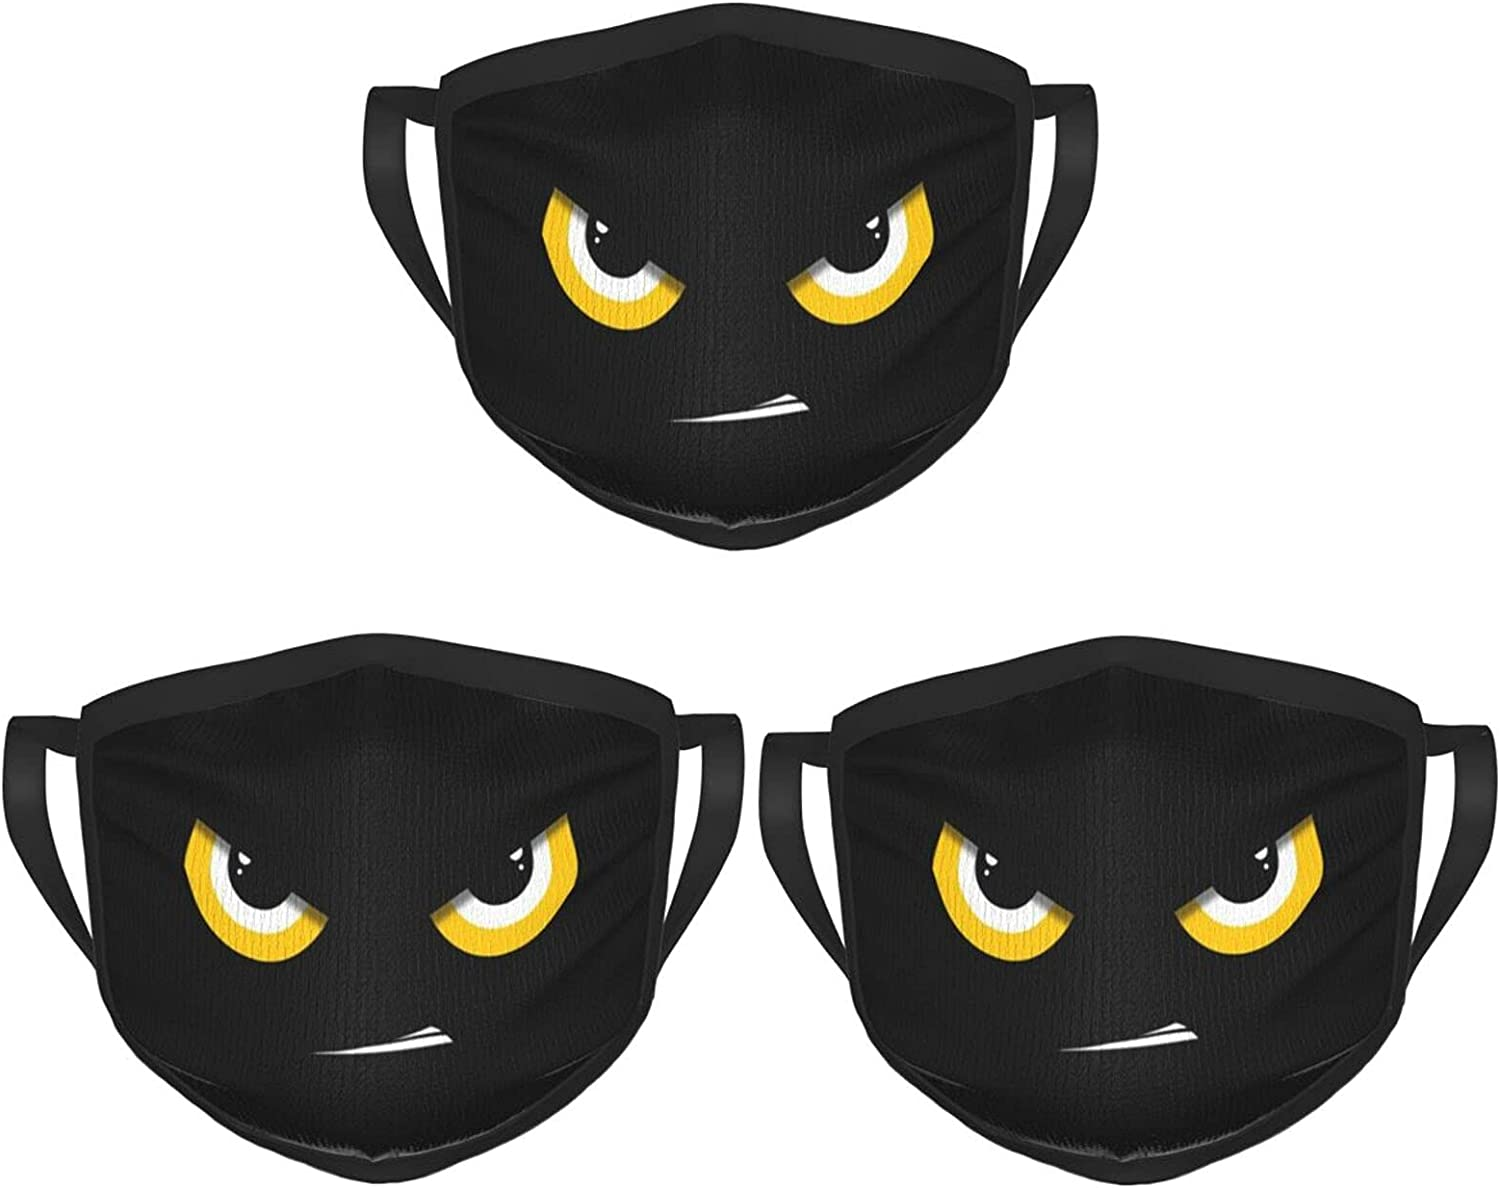 Balaclava Earmuffs Night Animals With Glowing Eyes Face Mouth Cover Mask Reusable Windproof Scarf Towel Cover Headwrap